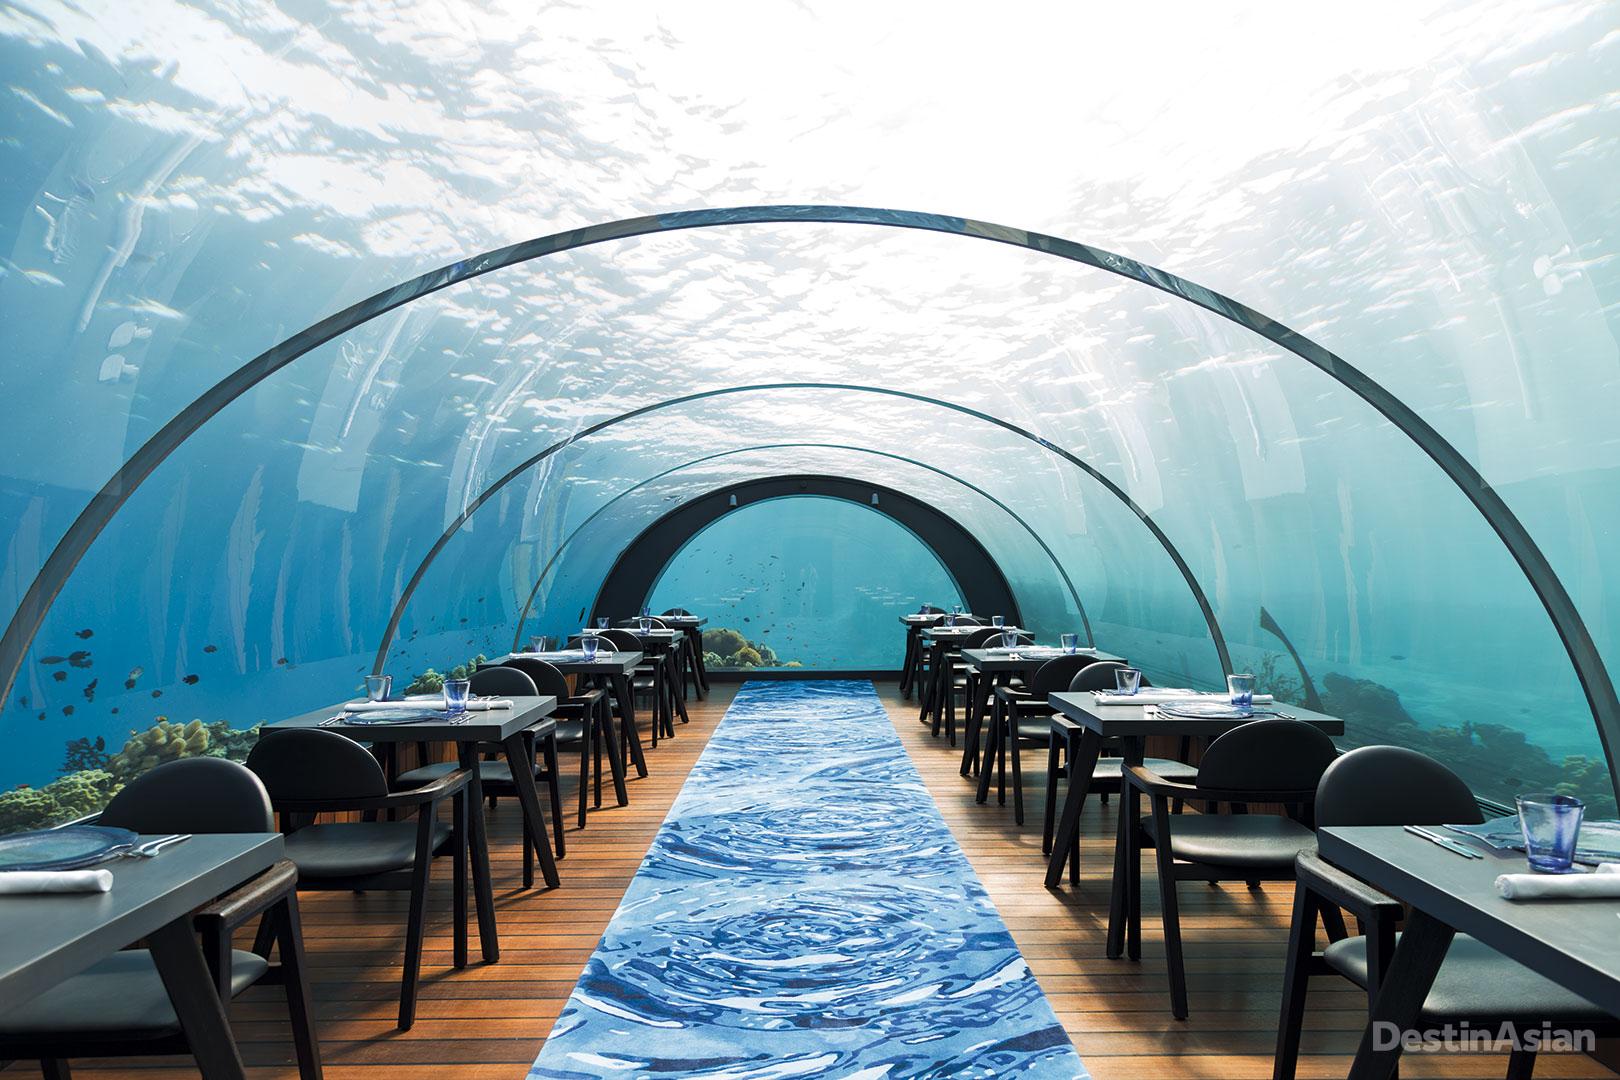 Submerged almost six meters below the waves, Hurawalhi Island Resort's 5.8 bills itself as the world's largest all-glass underwater restaurant.